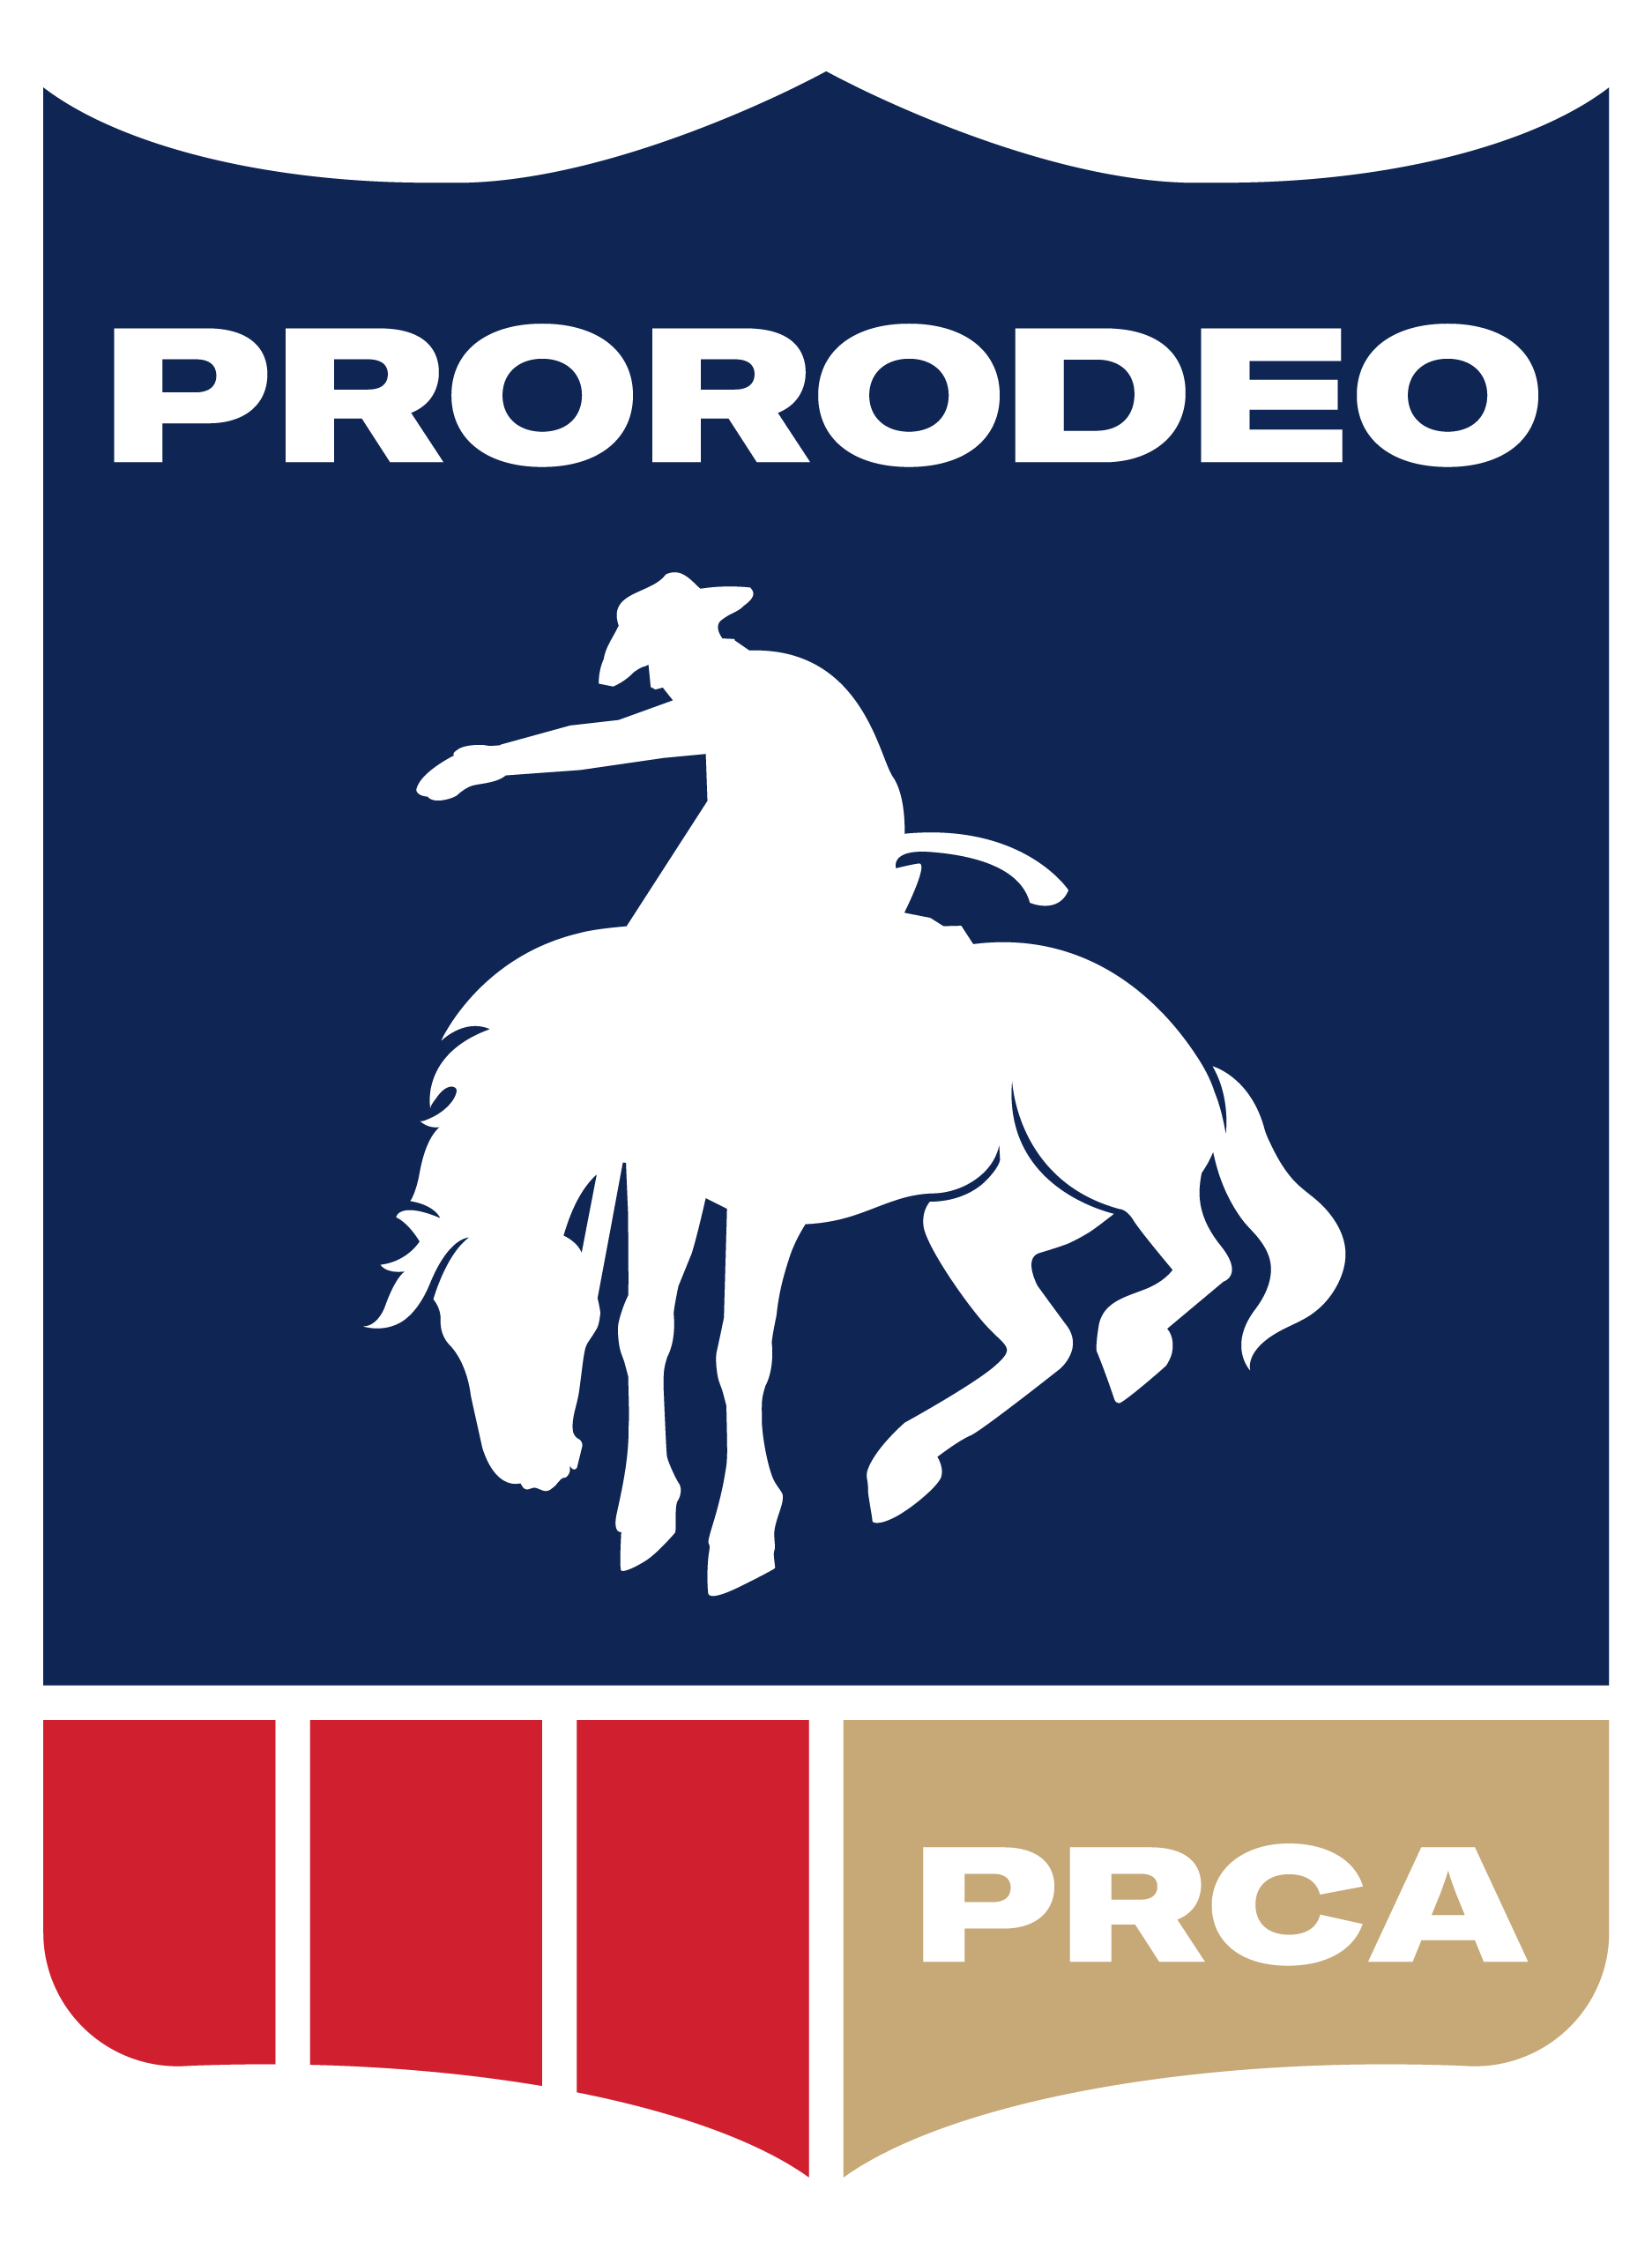 prca-logo.png